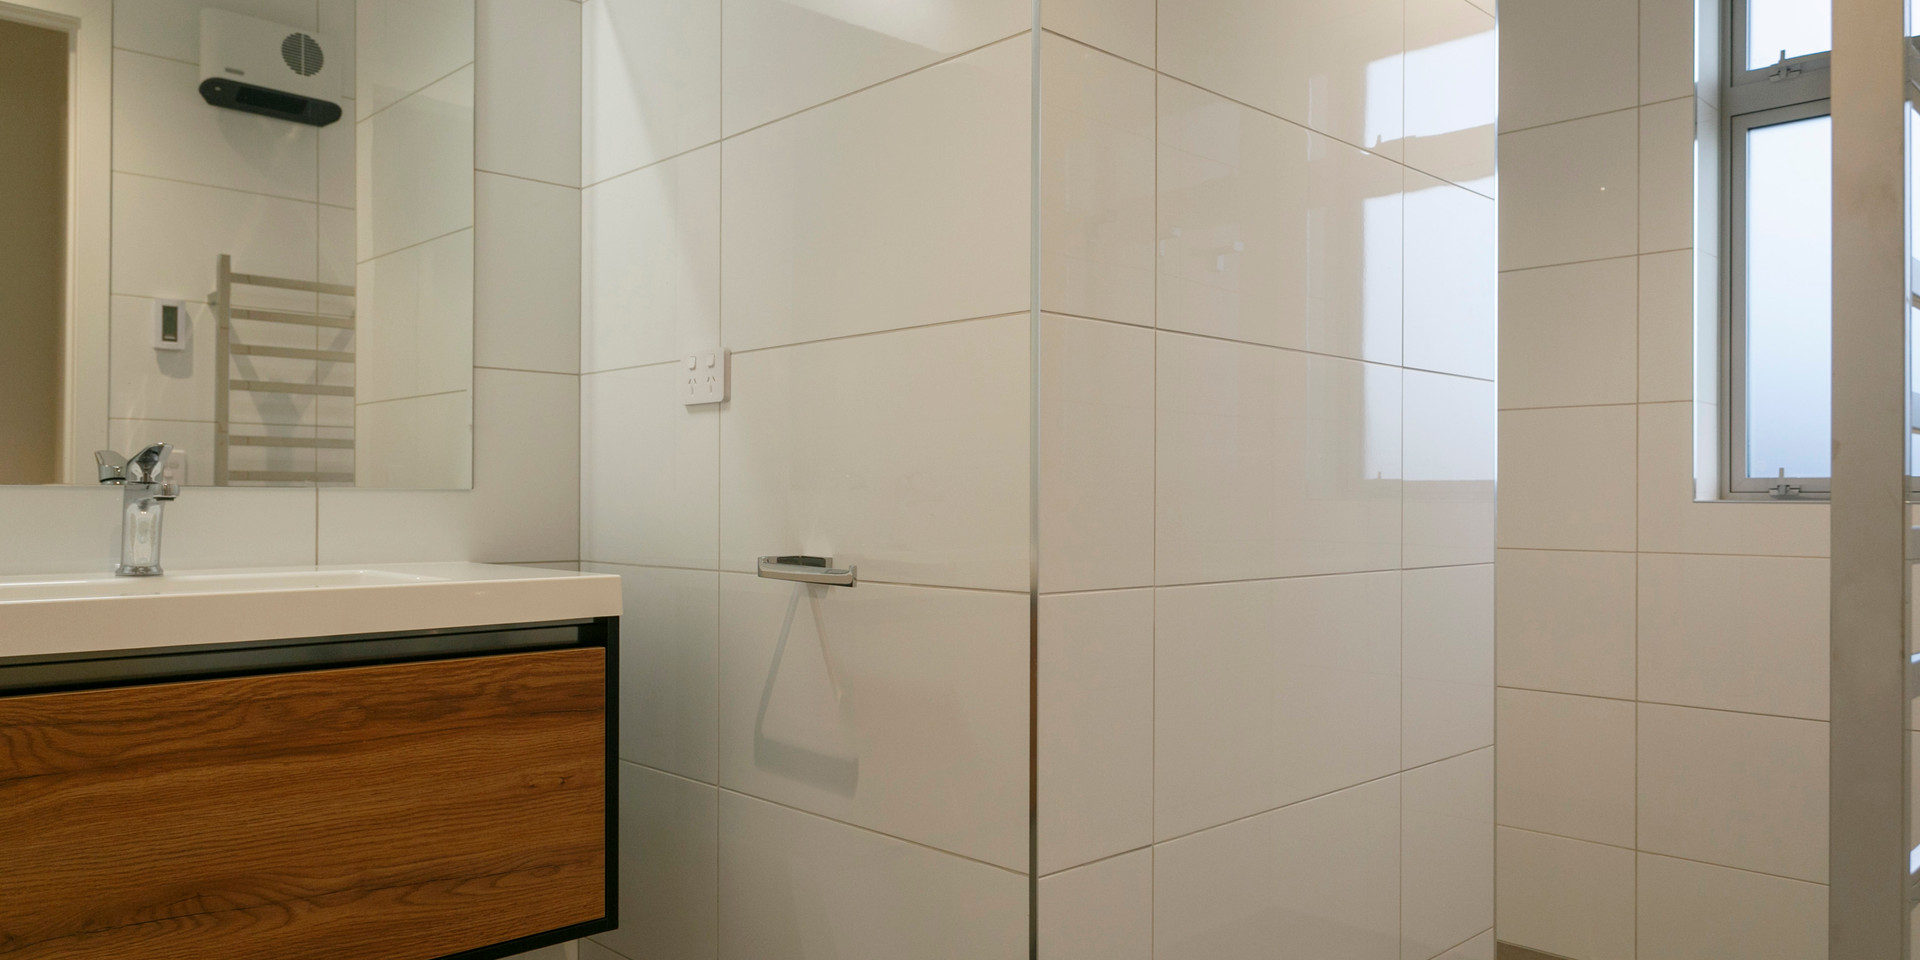 Tiled Guest Bathroom